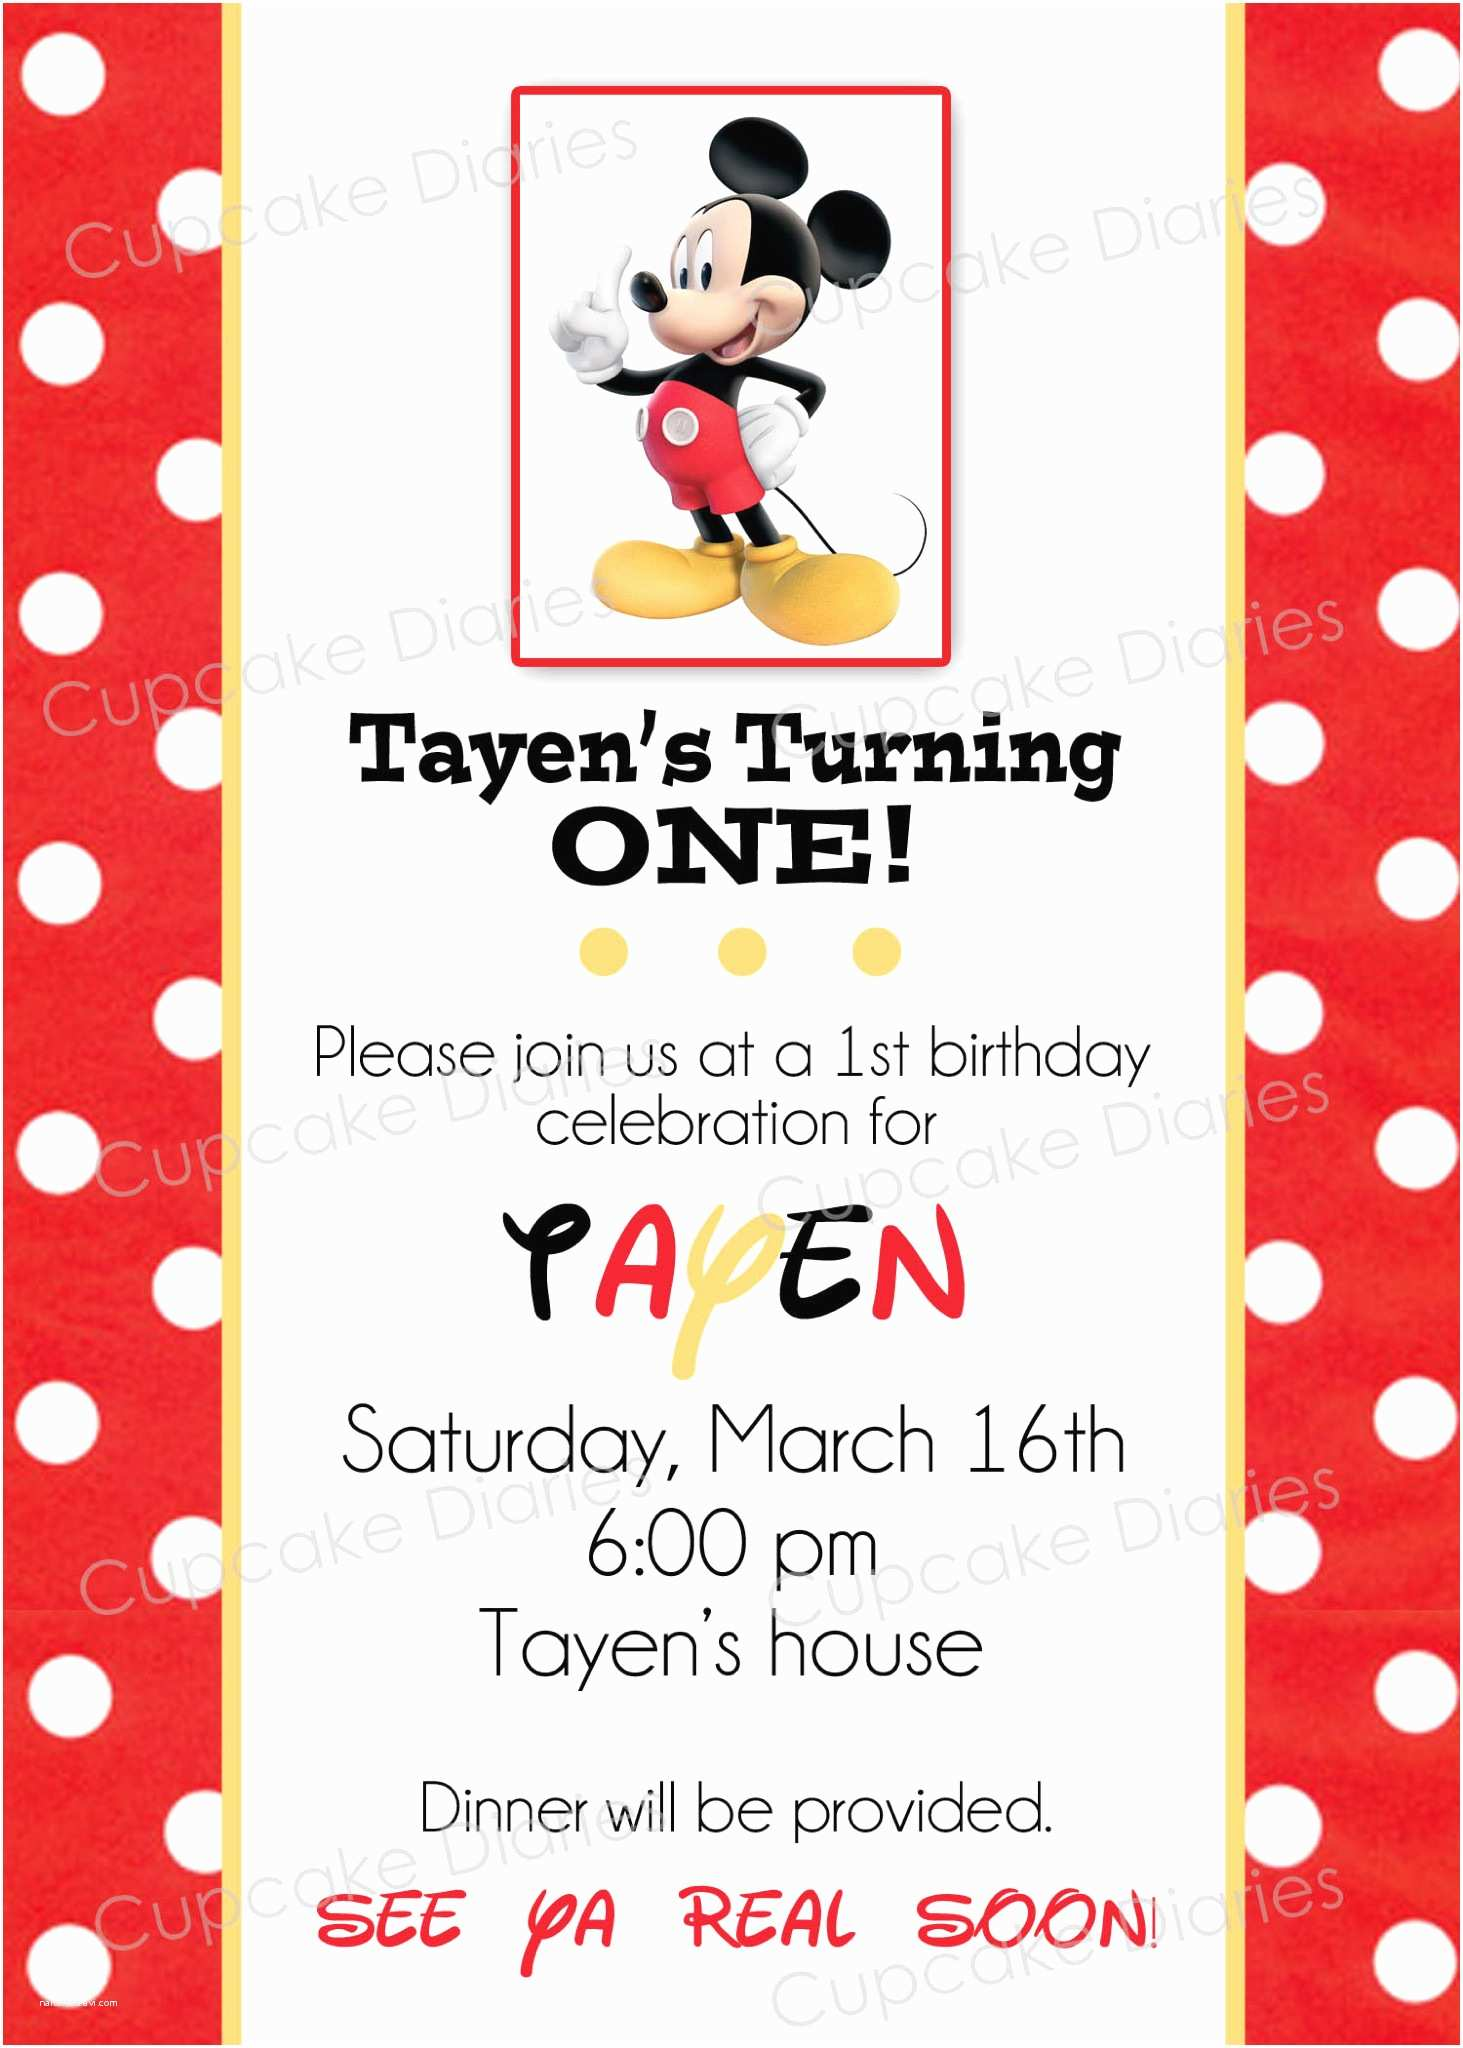 Mickey Mouse Birthday Invitation Simple Mickey Mouse Birthday Party Free Subway Art